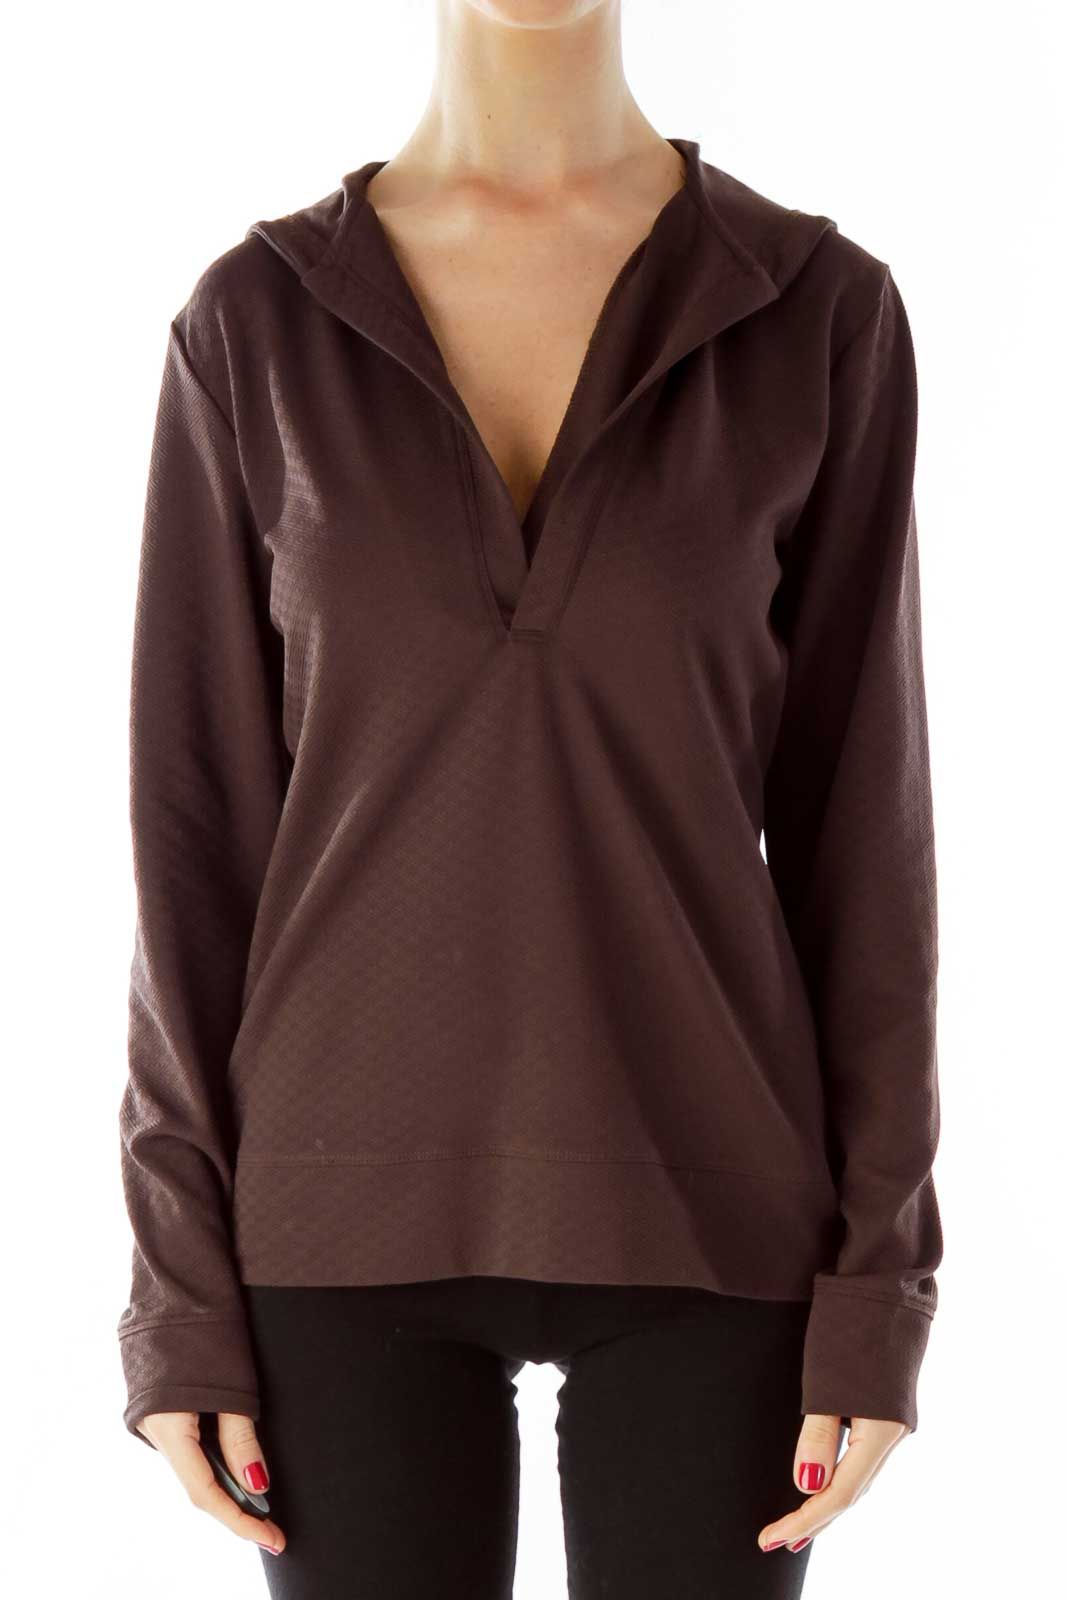 Brown Hooded Sports Top Front